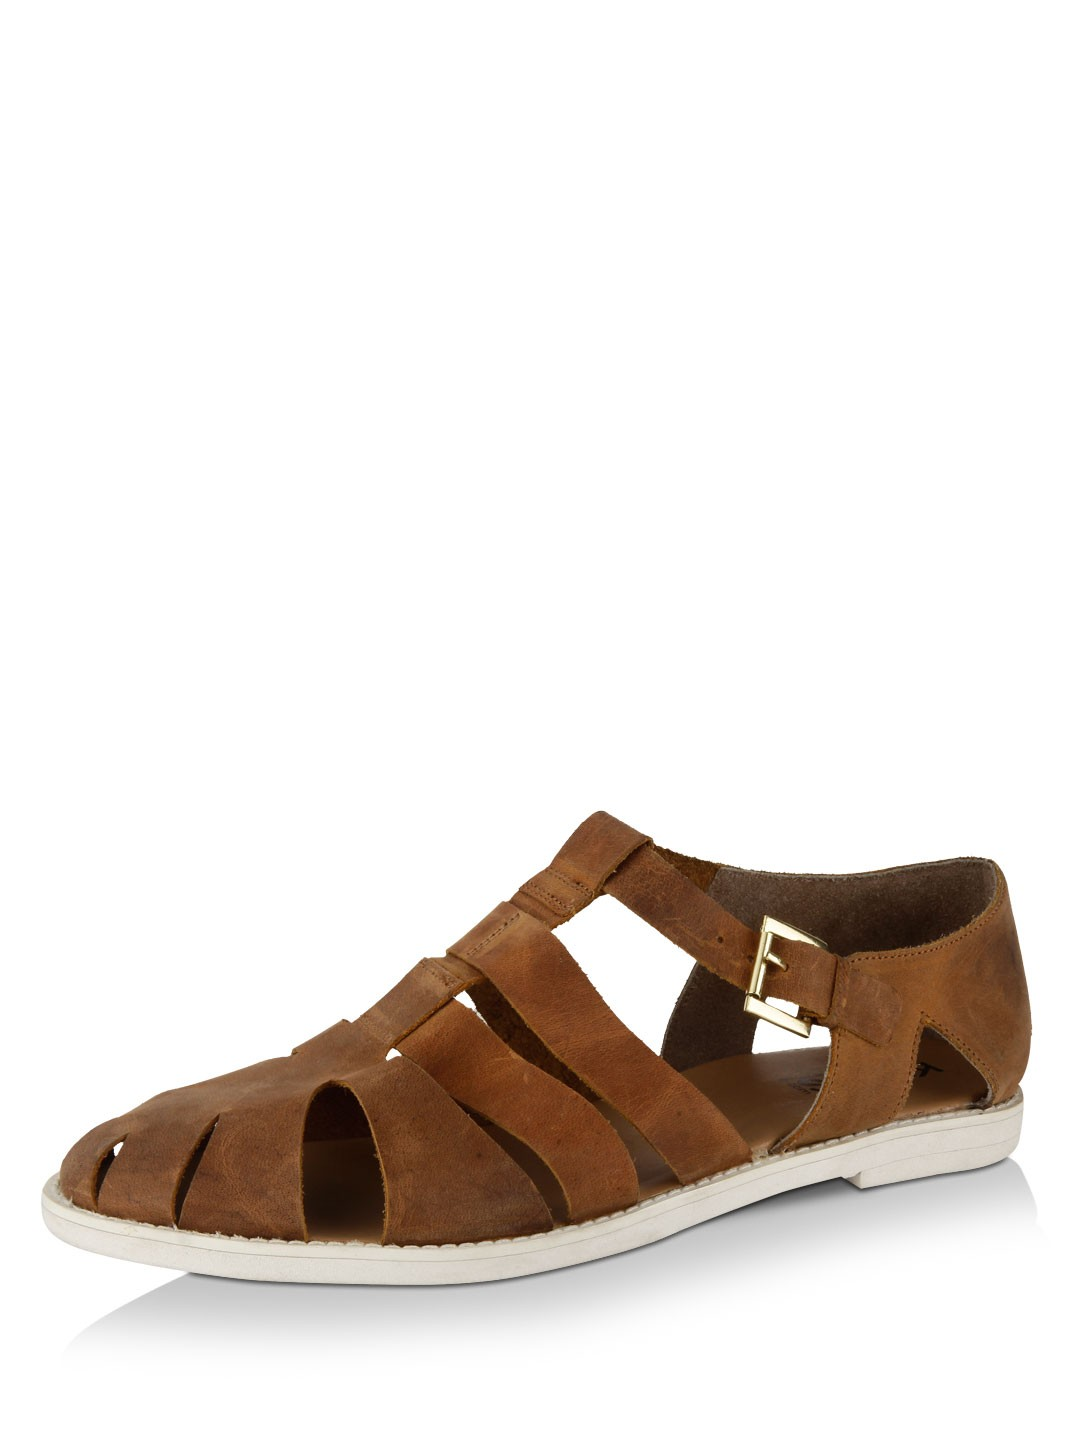 Fashion latest man sandal M - Clothes Womens & Mens Clothing & Fashion